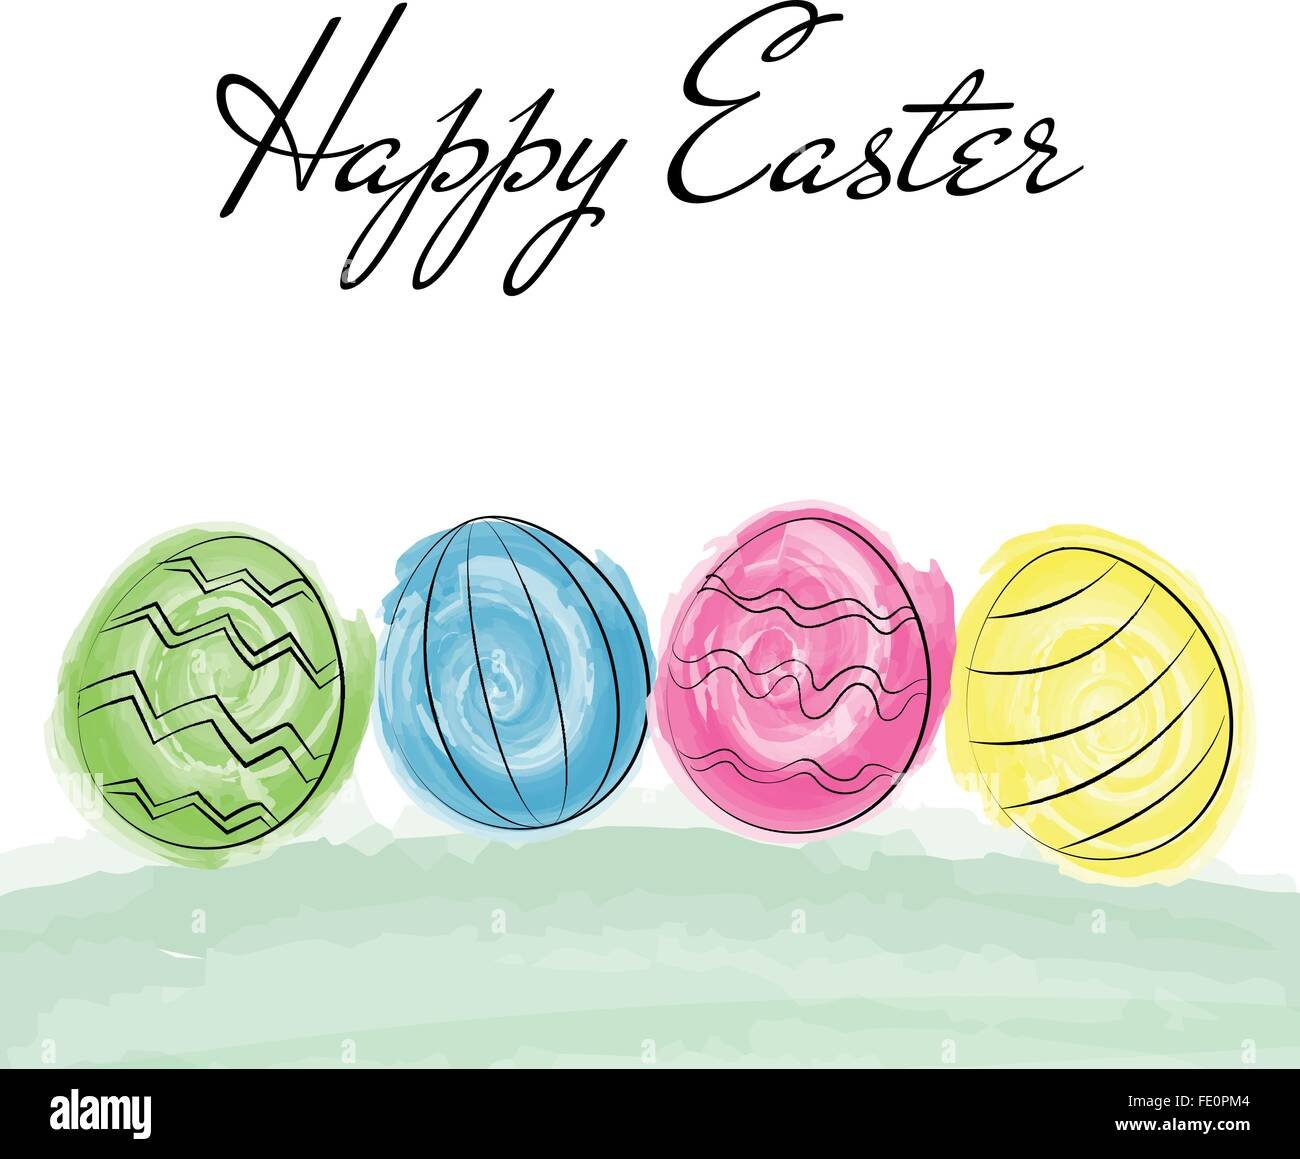 Happy Easter Greetings Card Stock Photos Happy Easter Greetings